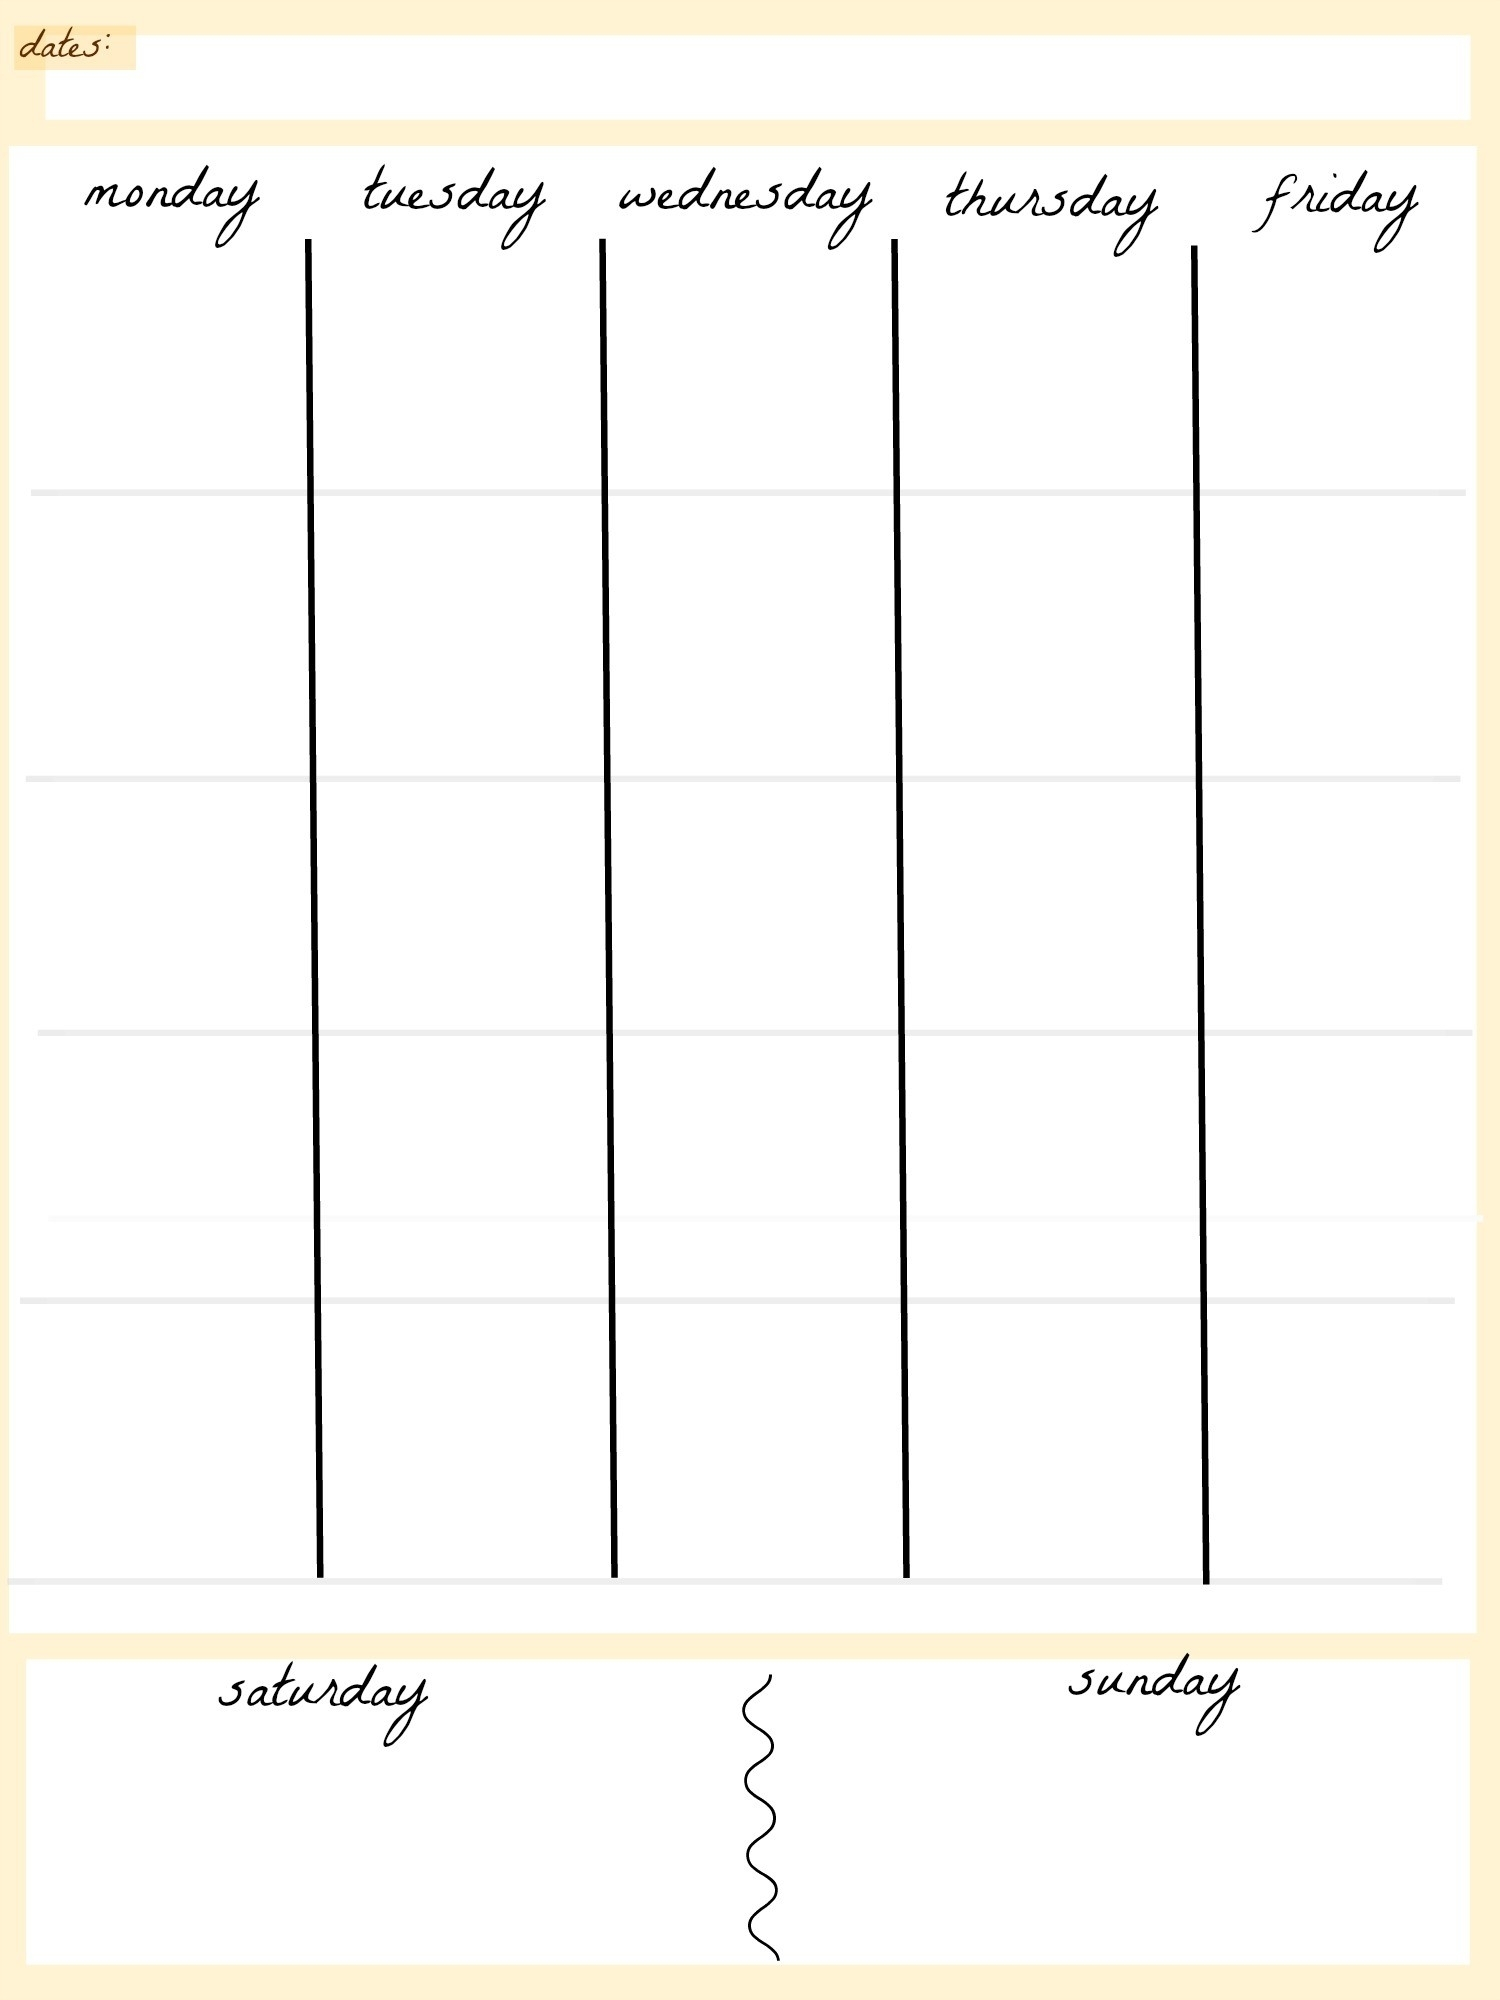 Blank Calendar Template 5 Day Week Weekly Calendar 5 Day Travel Cal1 intended for Free Blank 5 Day Calendar